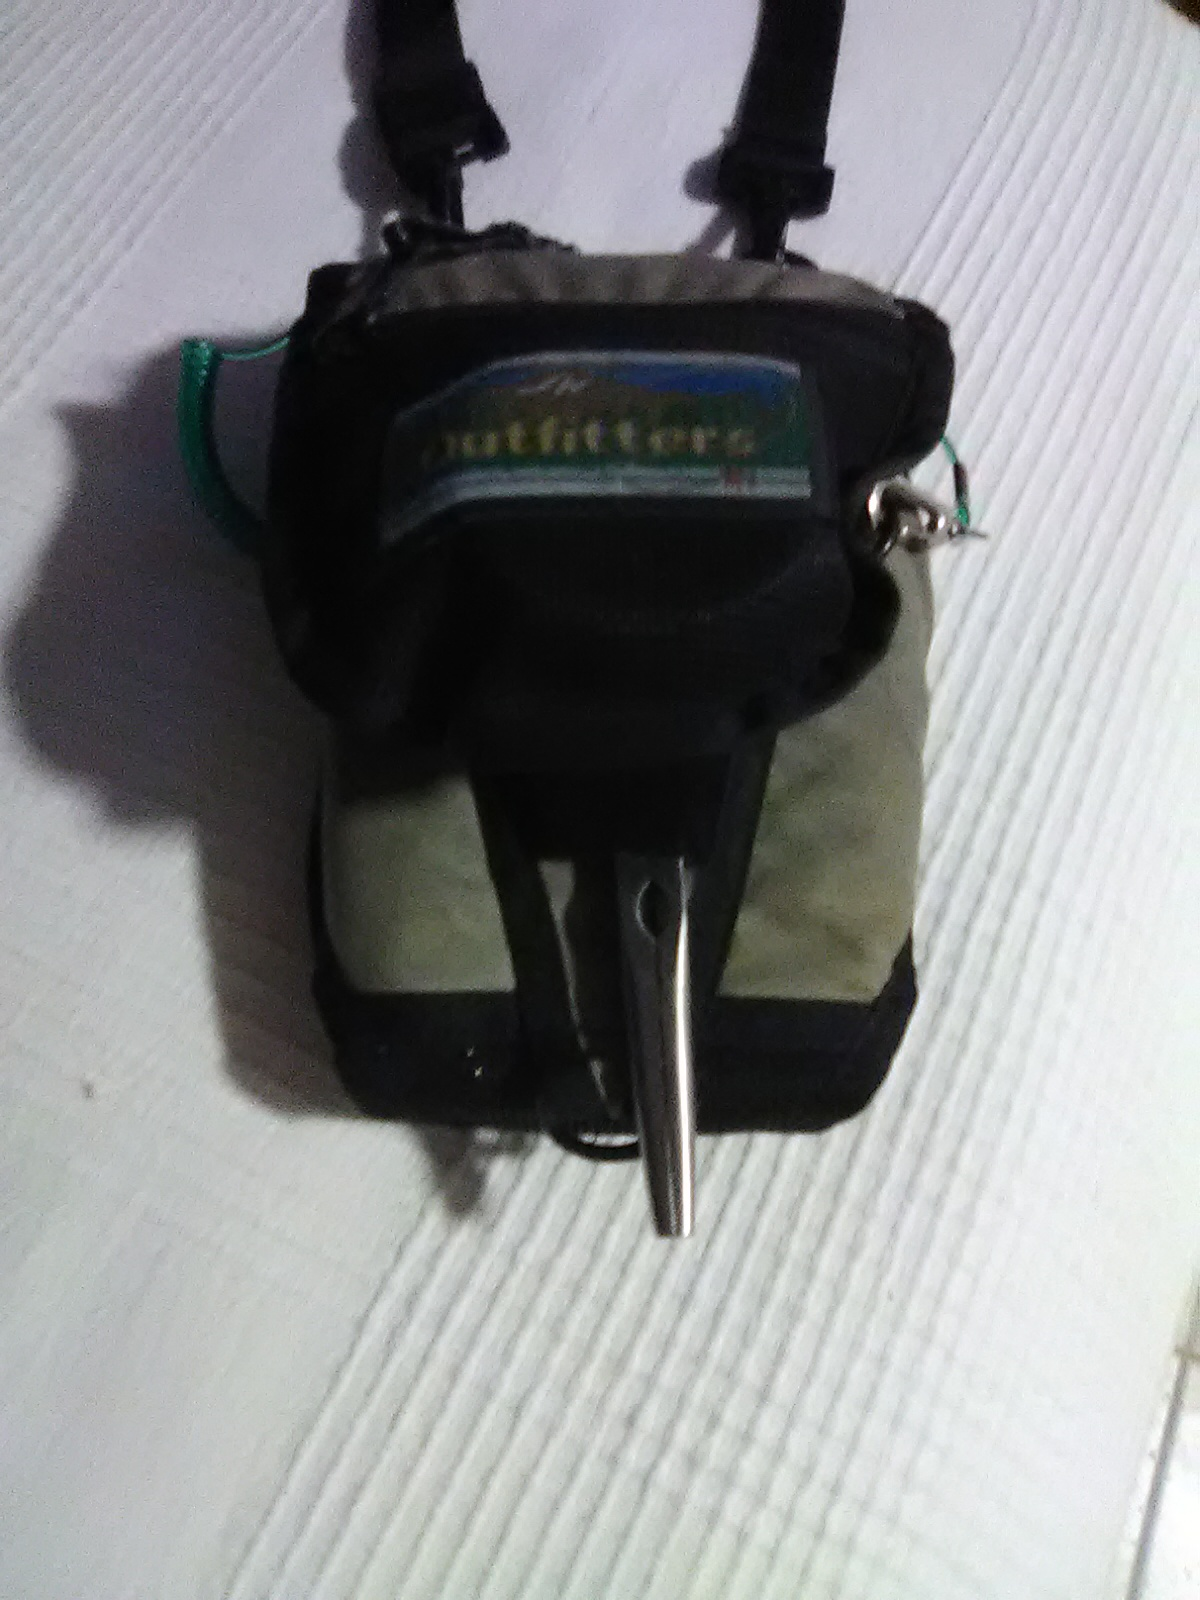 My Outfitters Bonefish Pack finally reaches self-actualization...well, almost